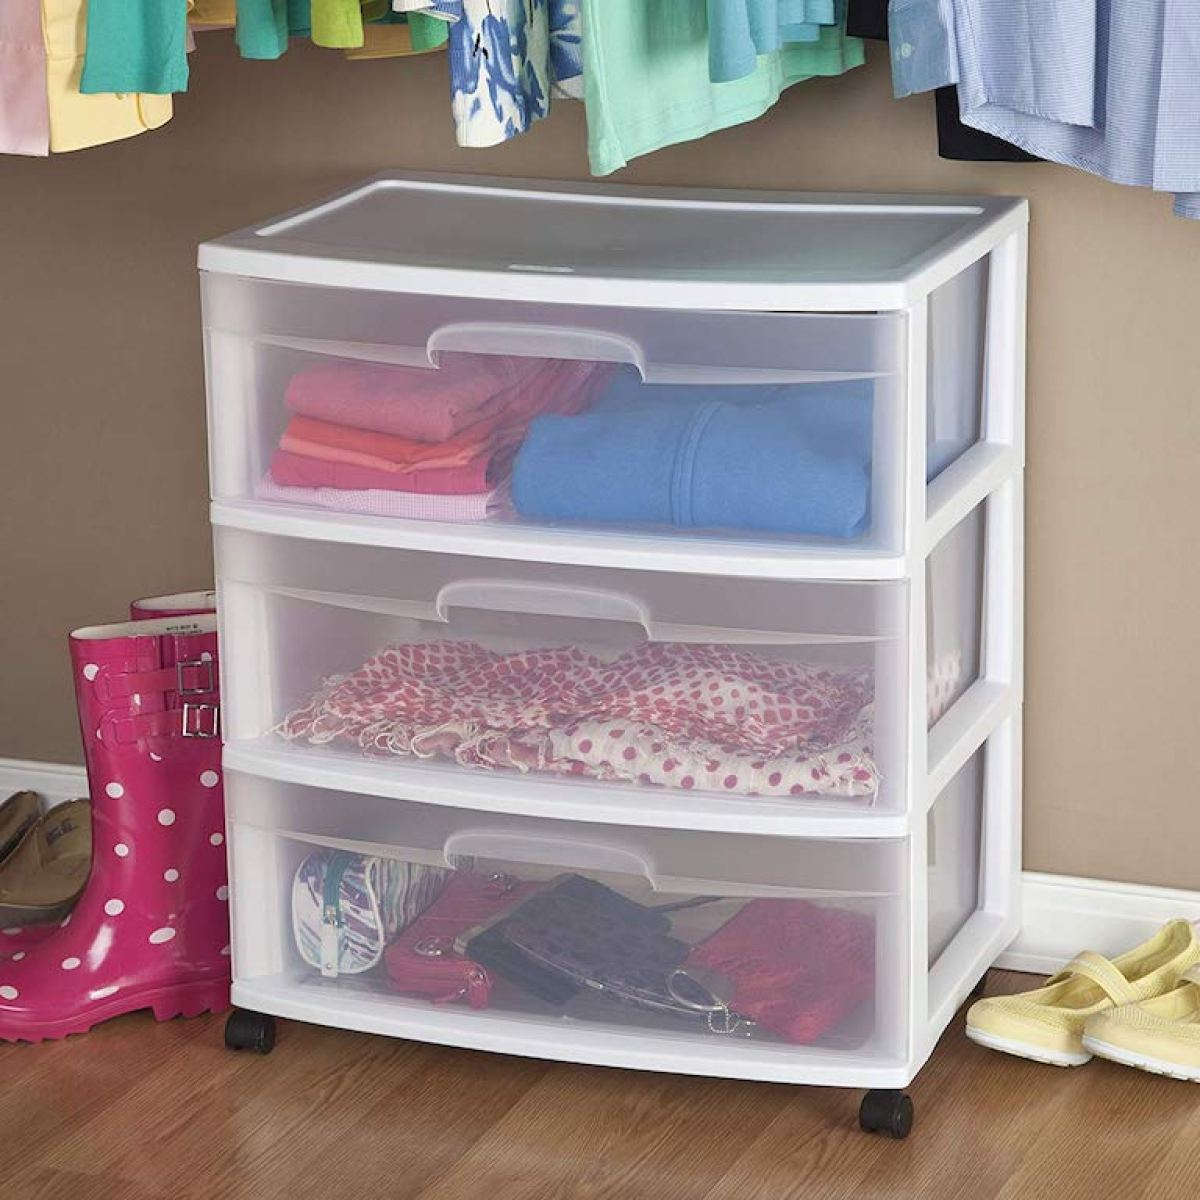 Sterilite Cart with clothing in it in a closet with a hardwood floor